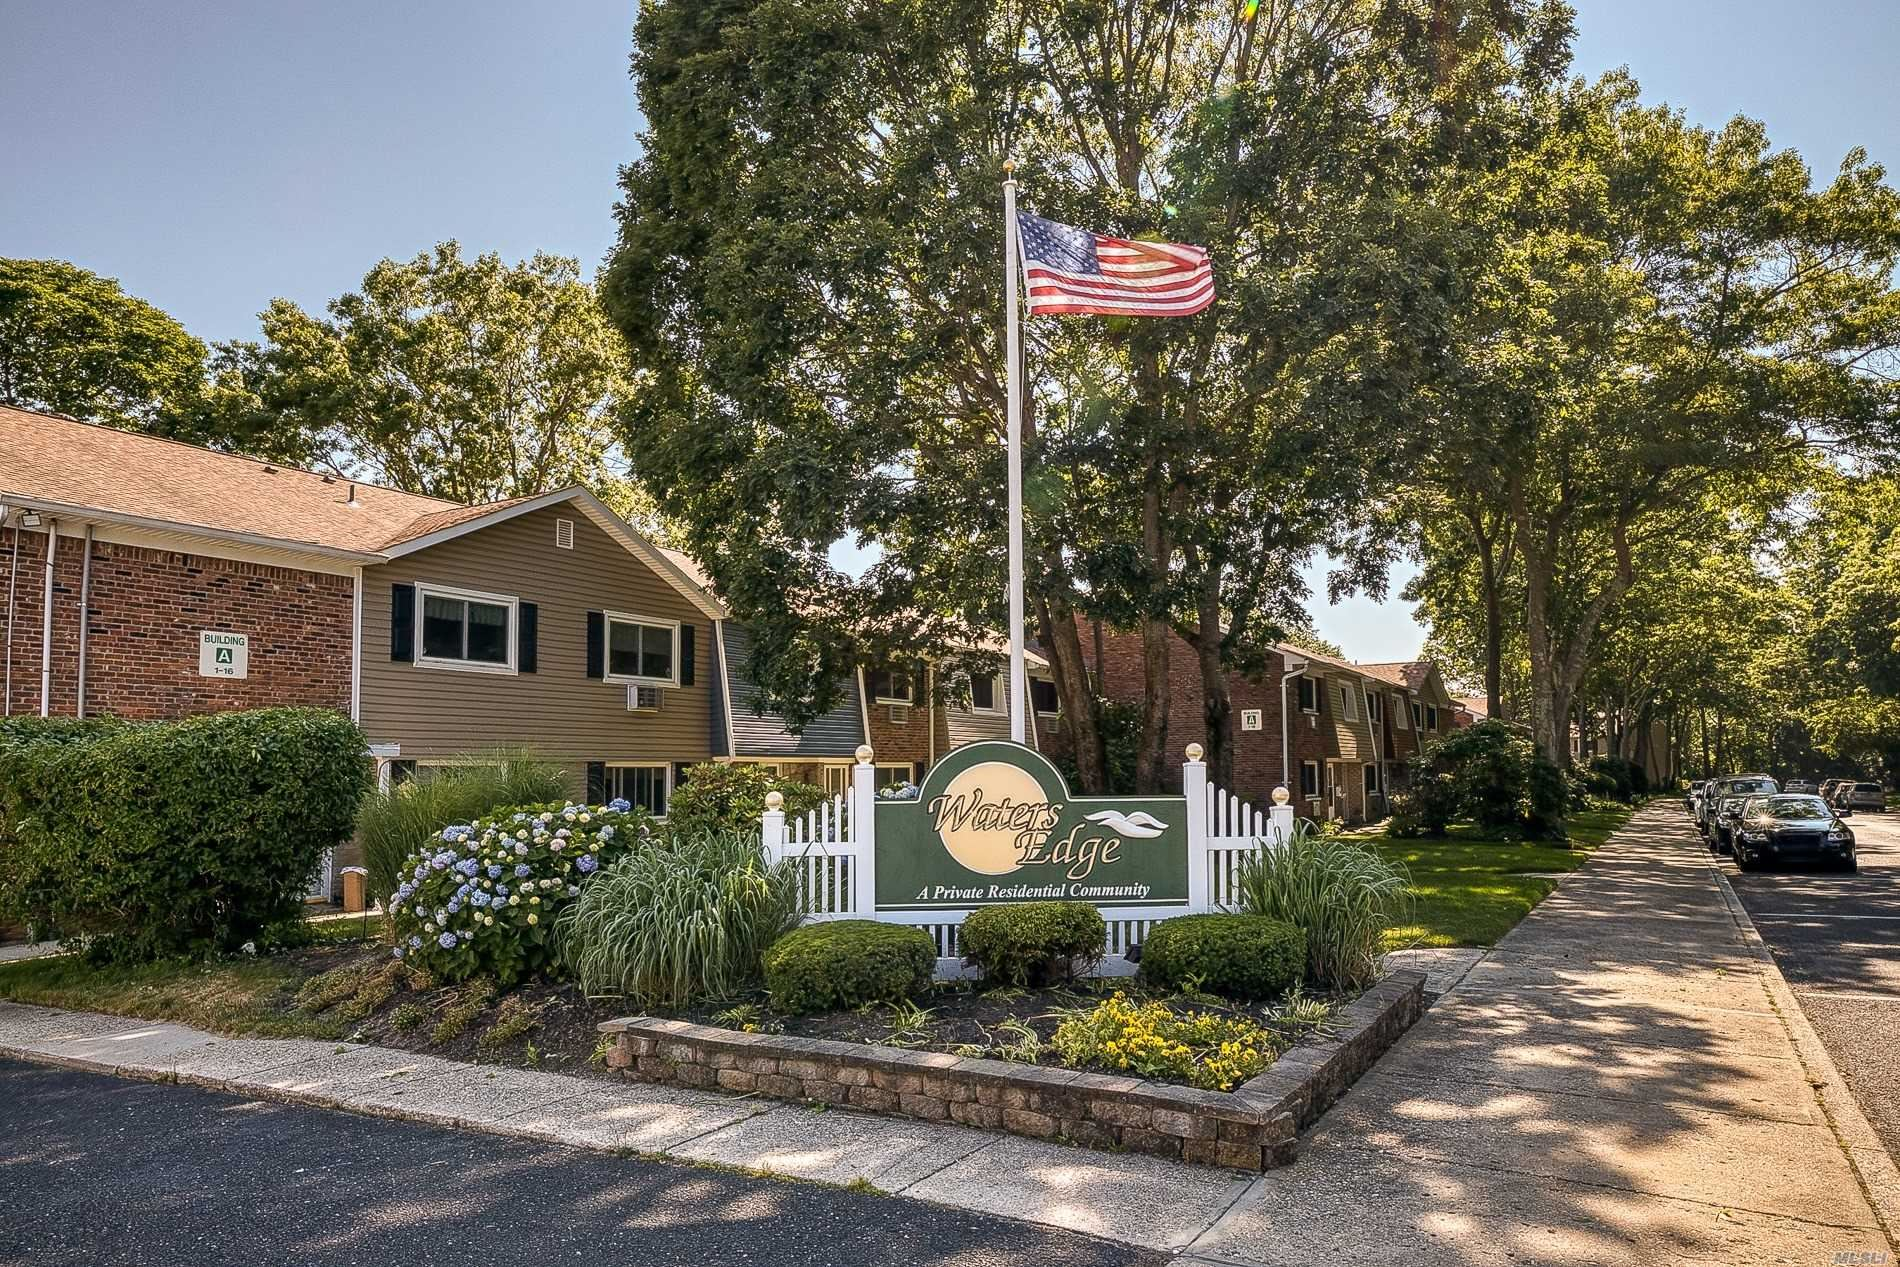 40-142 W 4th Street #142, Patchogue, NY 11772 - MLS#: 3226401